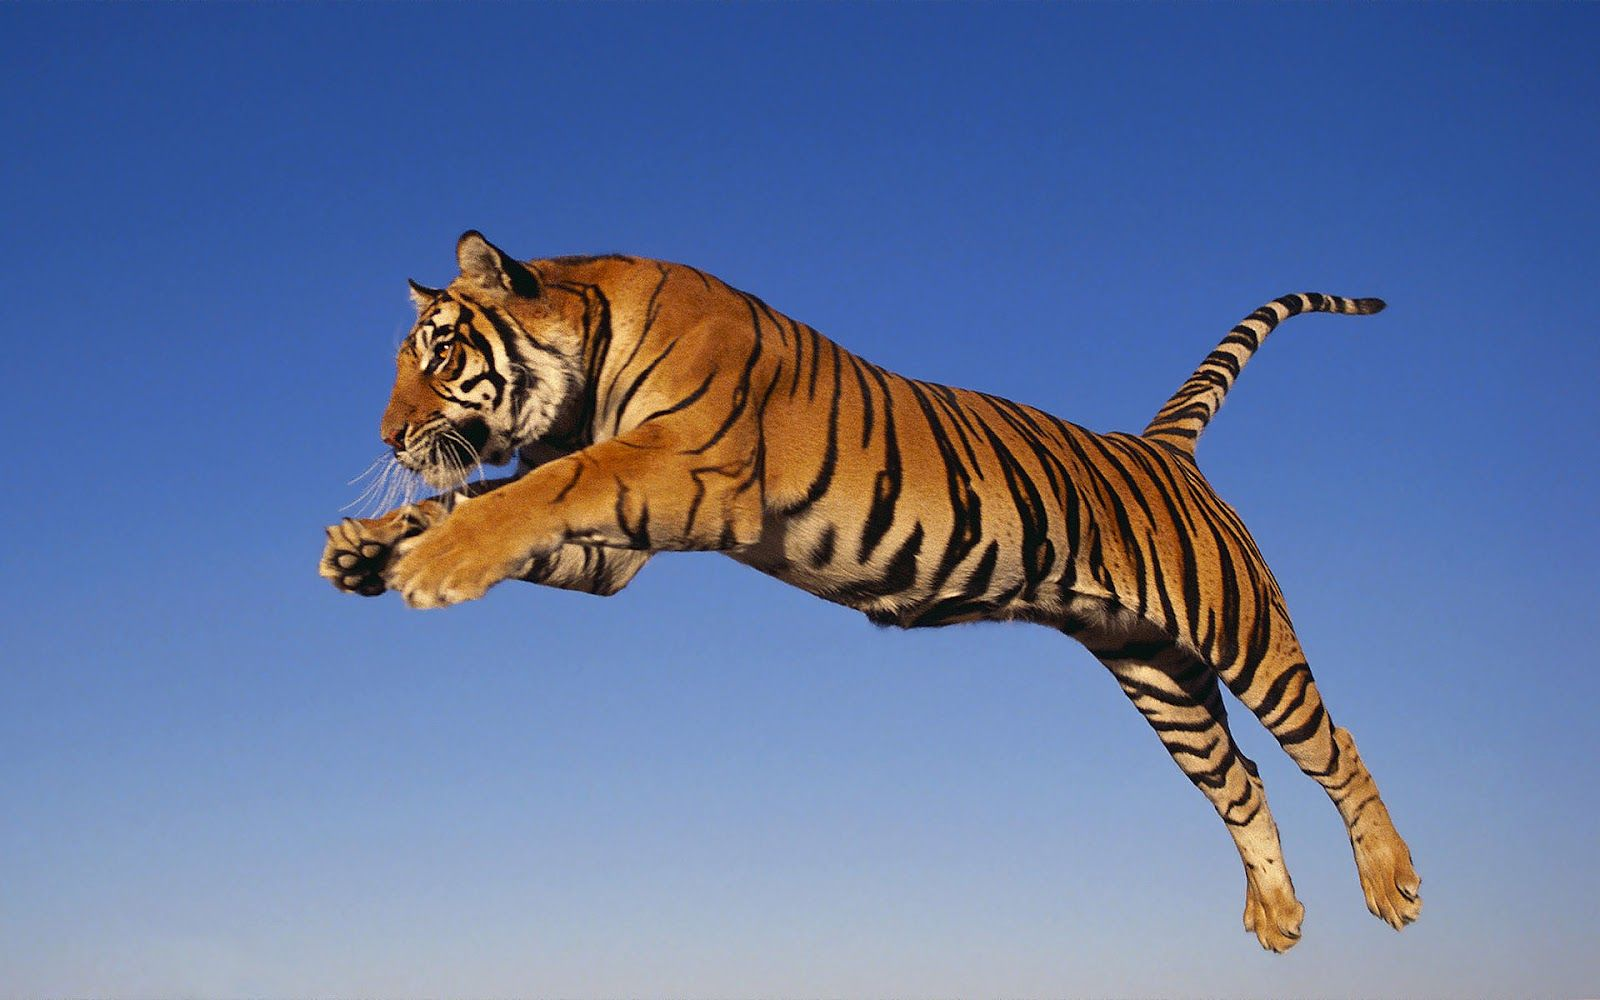 hd tiger images - hd wallpapers and pictures | beautiful animals